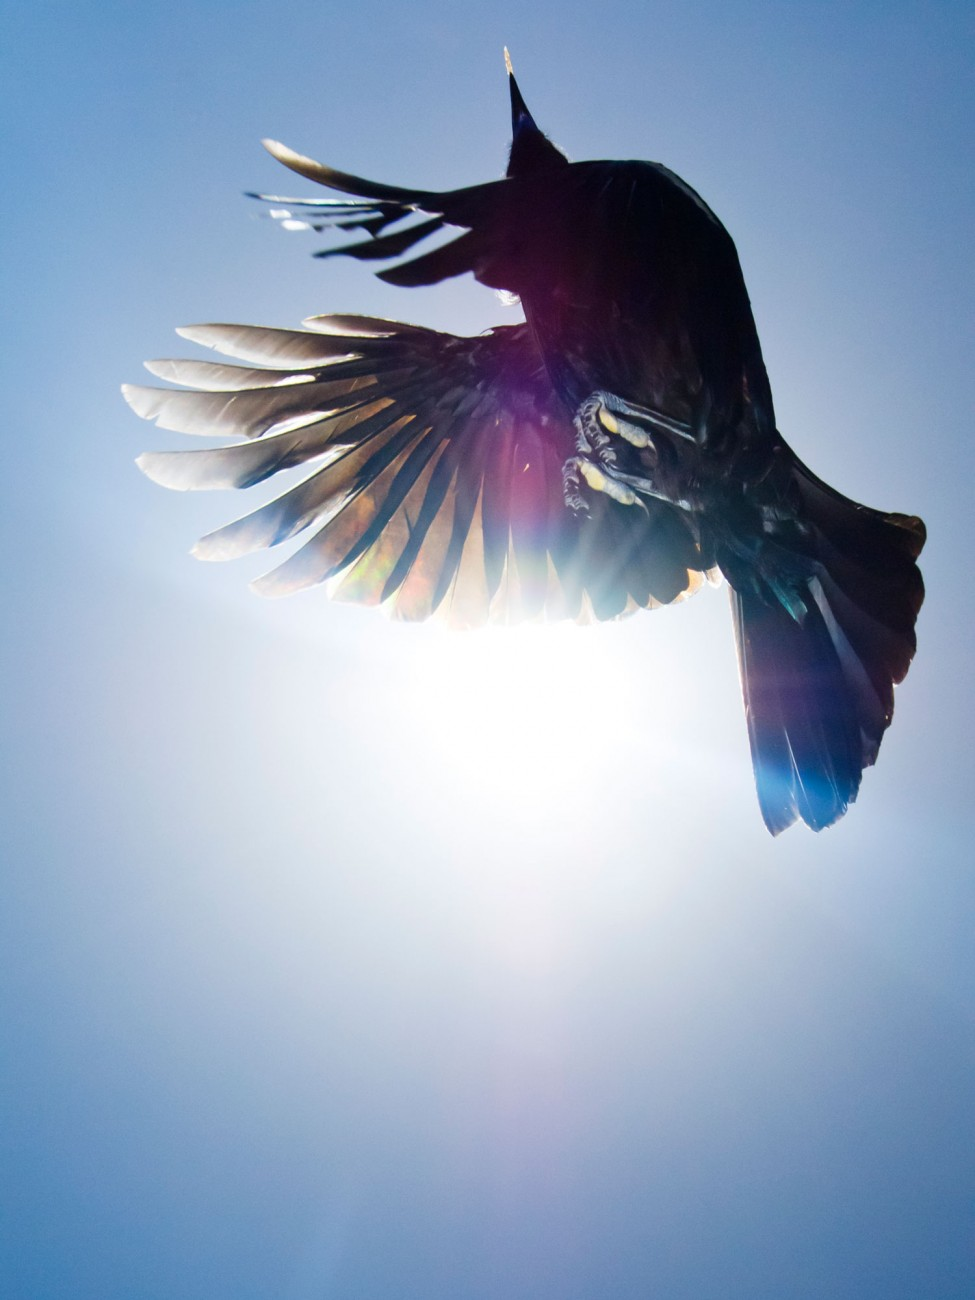 An adult tui launches into the air, revealing the slotted primary wing feathers which produce heavy whirring sounds often heard during displays and chases. These sounds are usually aggressive in function but are also used during courtship displays.